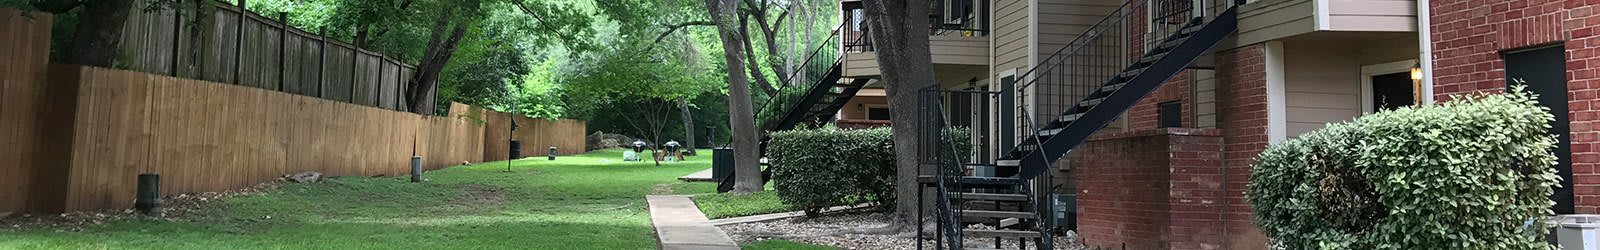 Pet friendly apartments in Austin